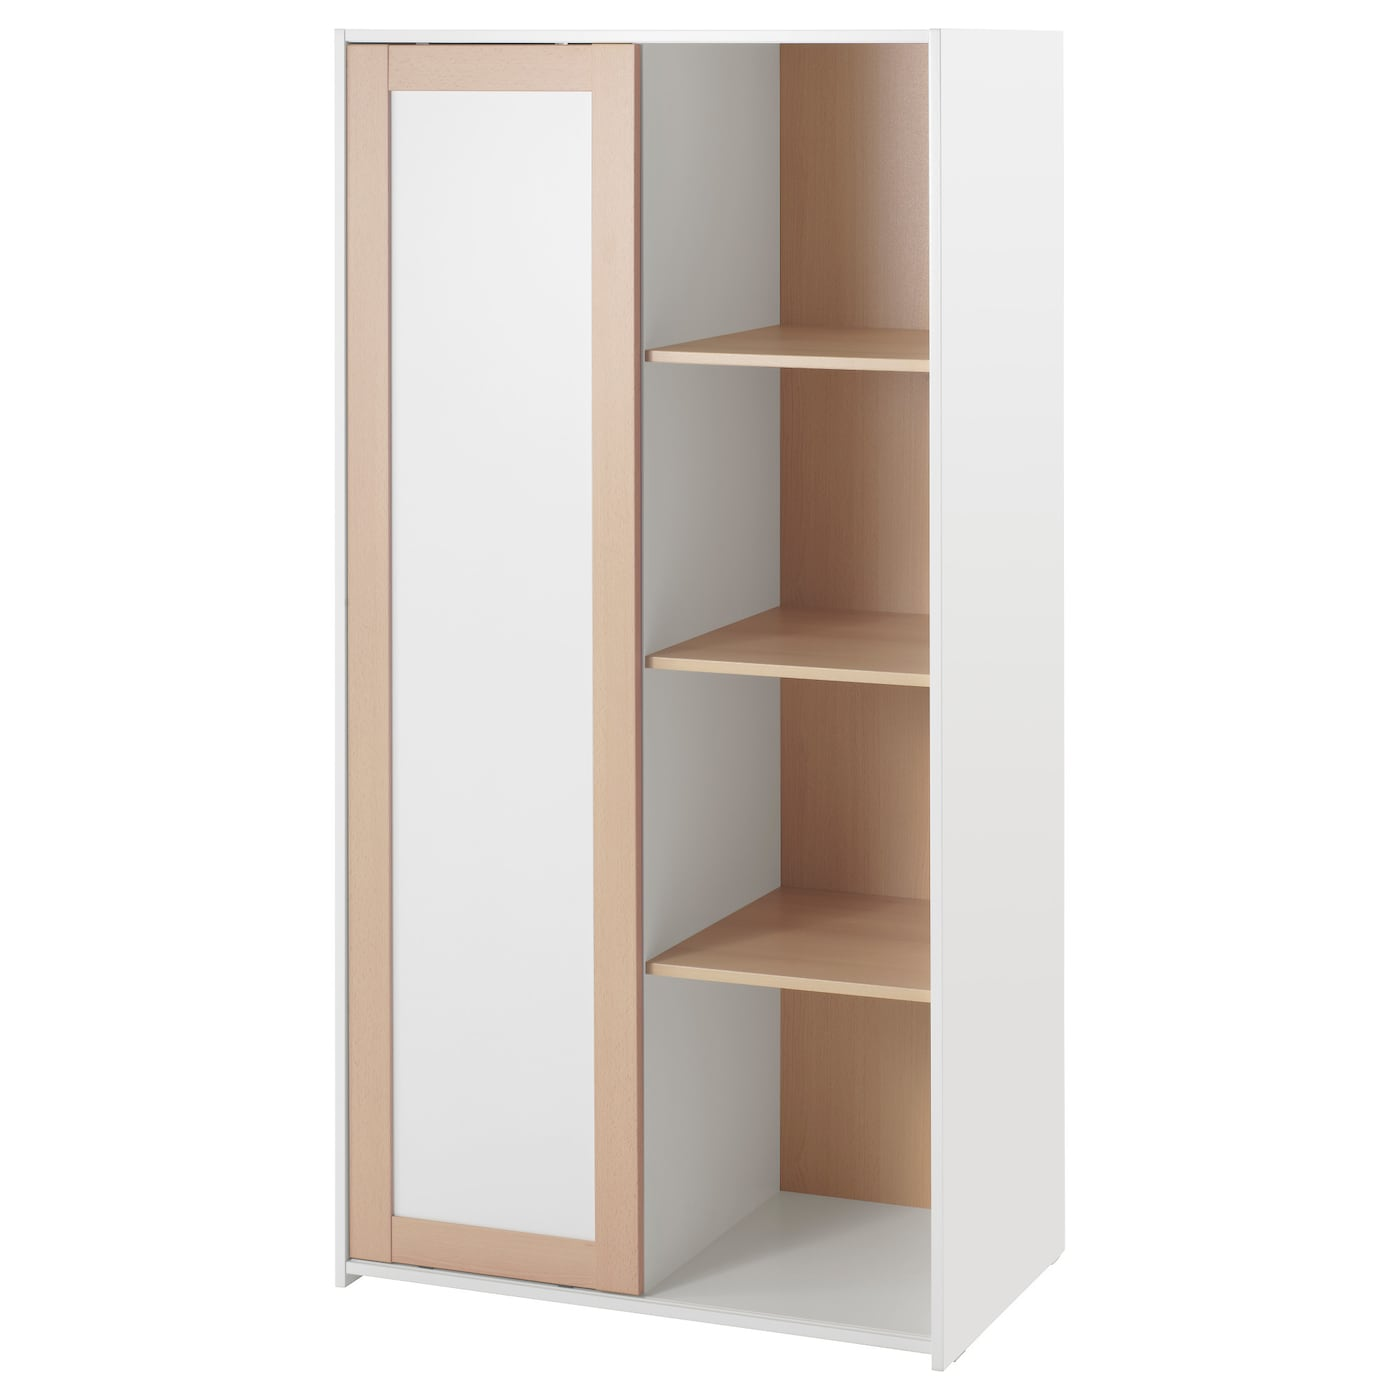 sniglar wardrobe beech white 81x50x163 cm ikea. Black Bedroom Furniture Sets. Home Design Ideas